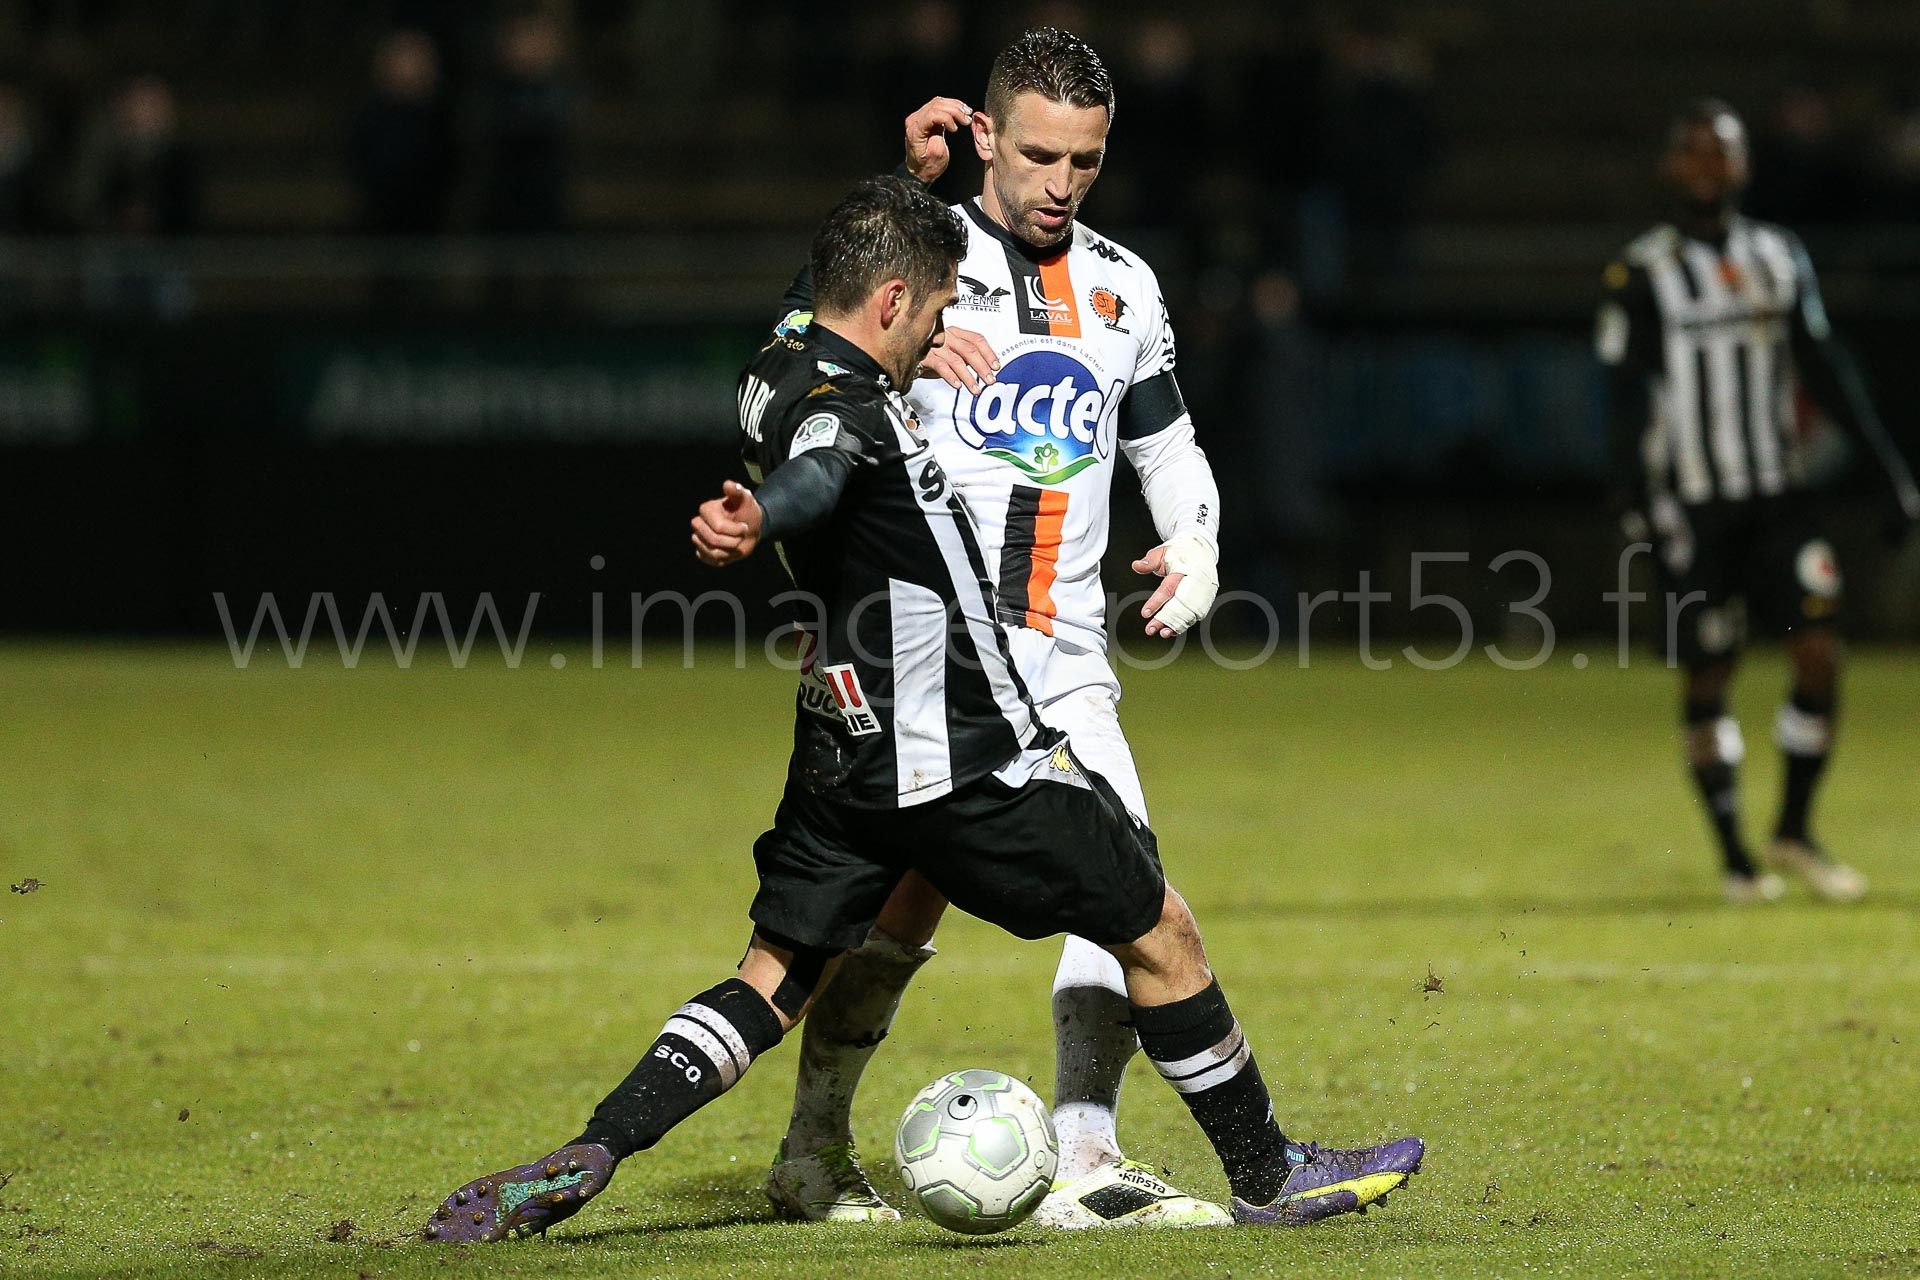 NG-Ligue2-1415-J25-Angers-Laval_8